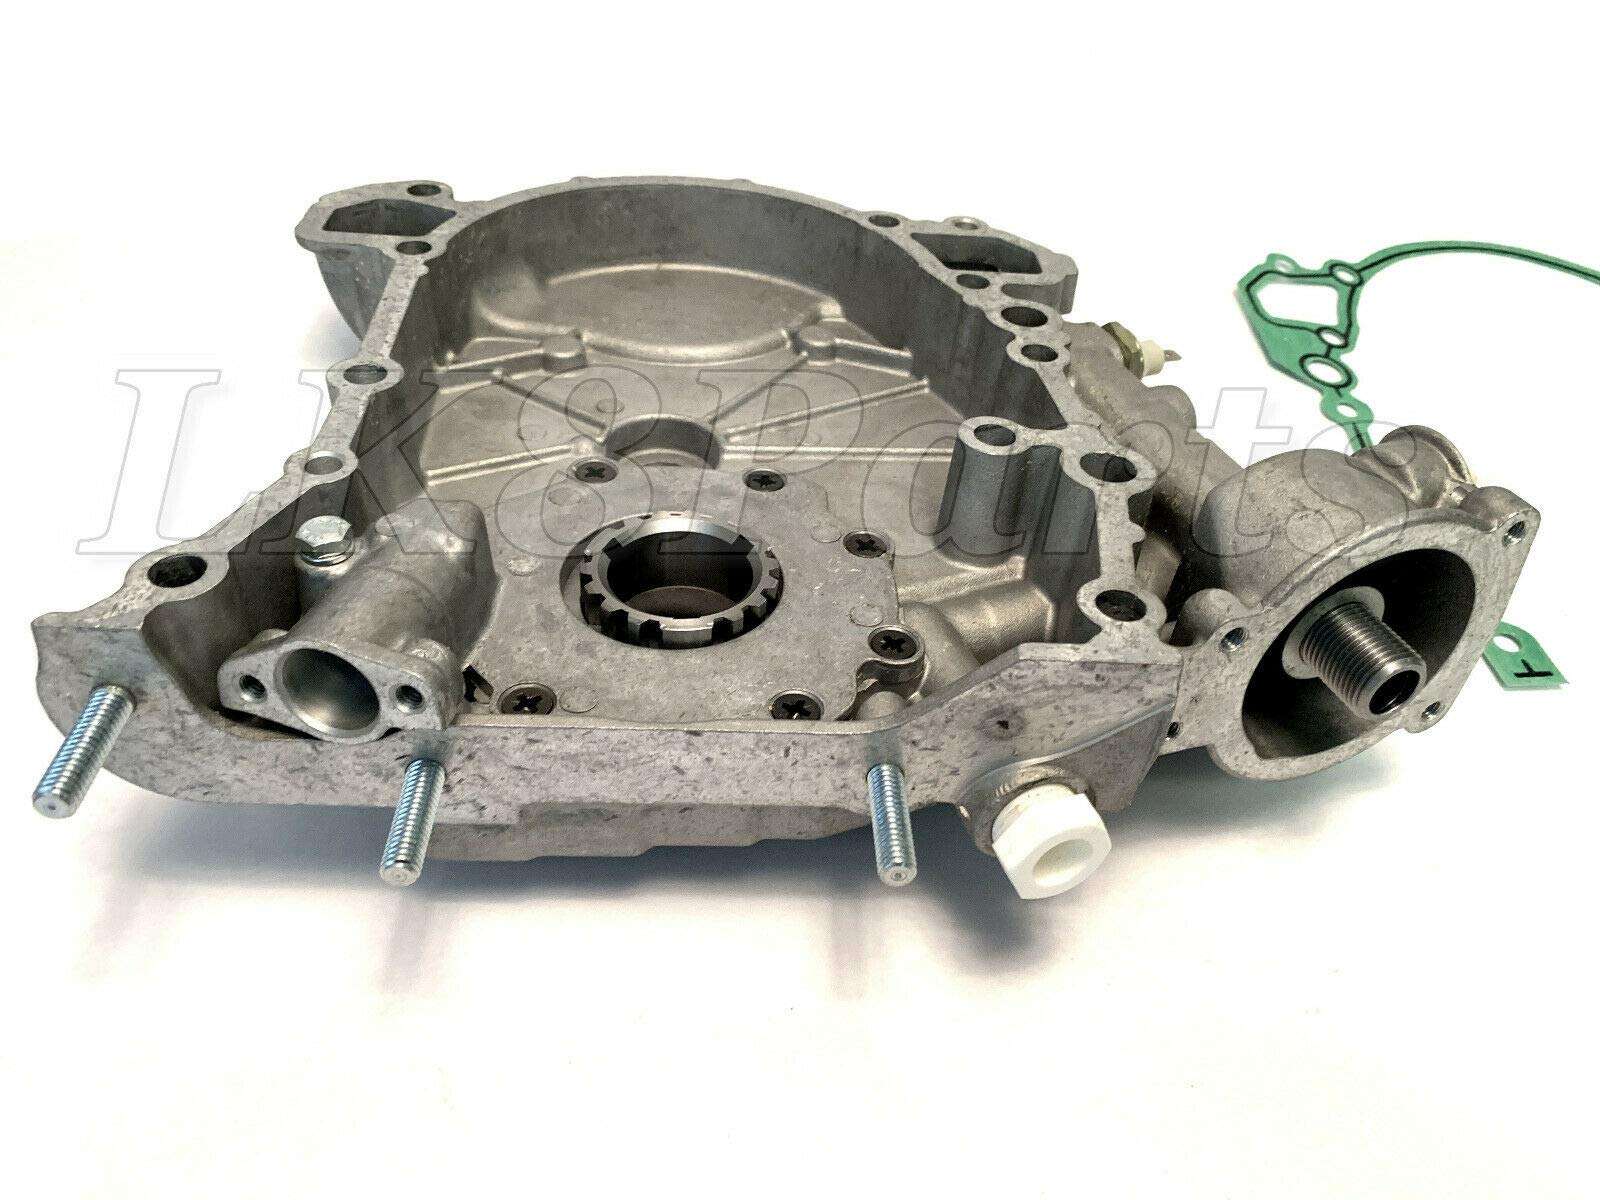 RANGE ROVER P38 95-99 DISCOVERY OIL PUMP FRONT ENGINE COVER W/GASKET ERR6438 by Proper Spec (Image #5)